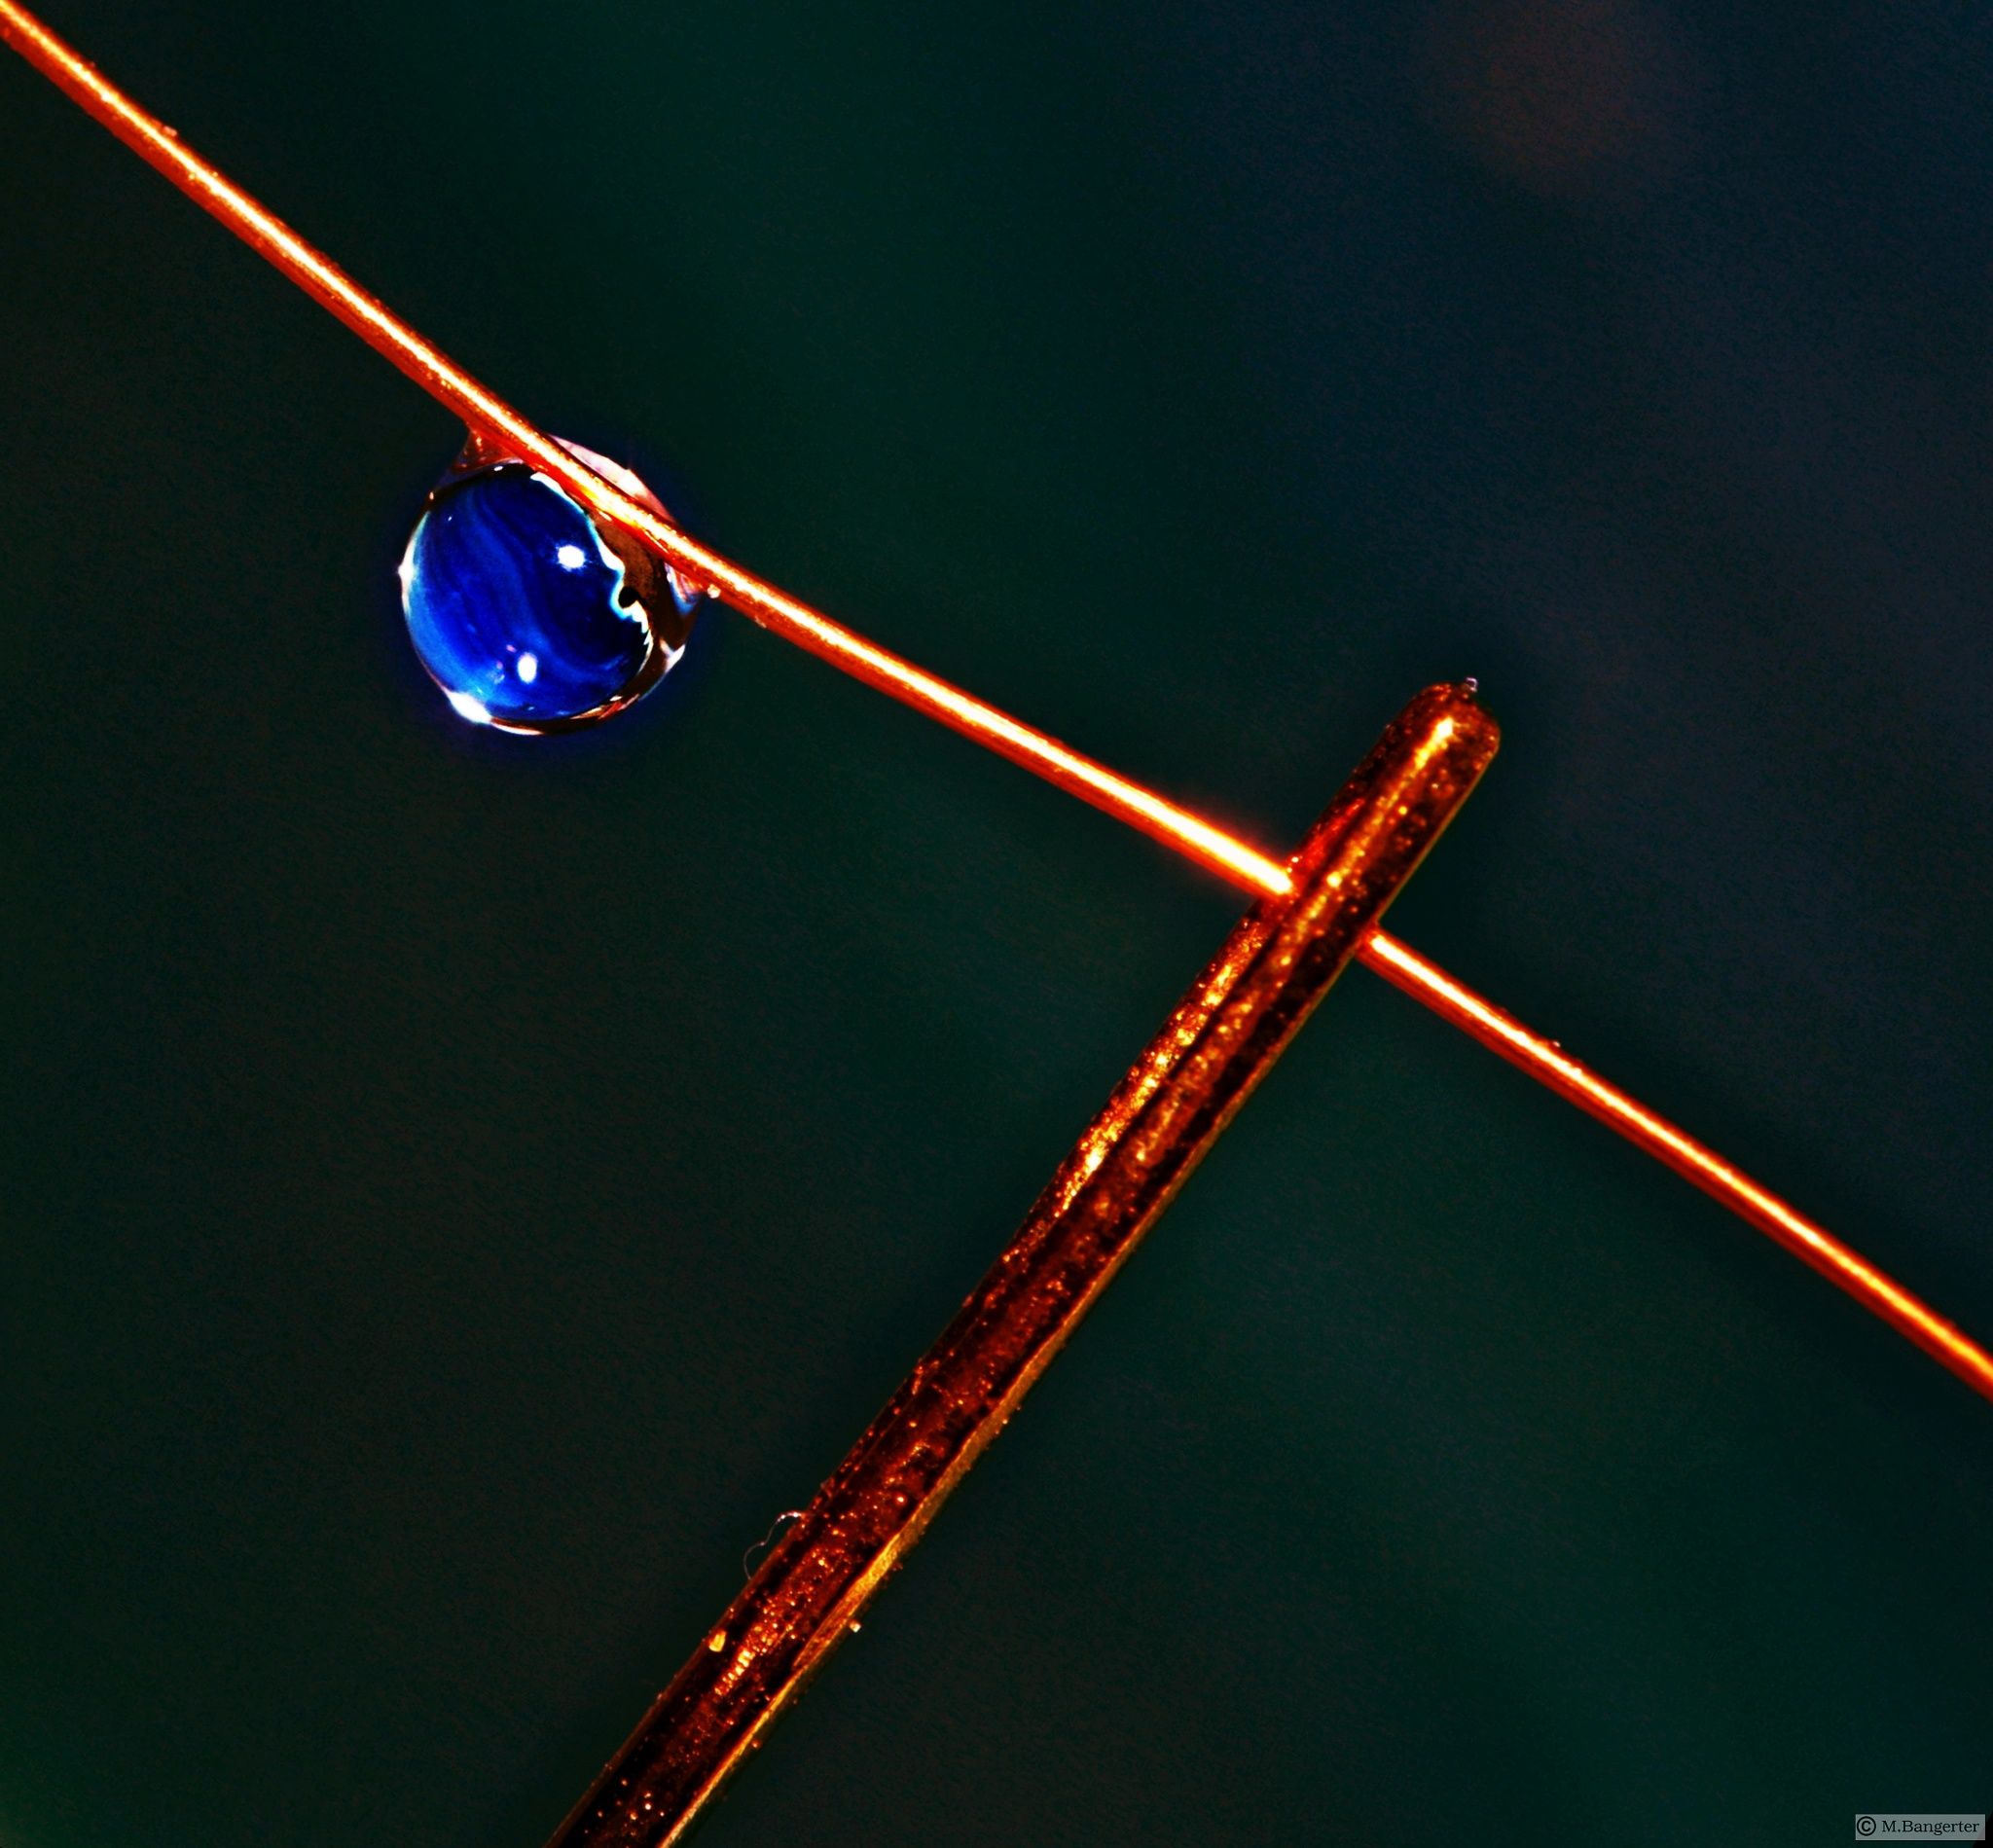 Blue drop and needle's eye by Michael